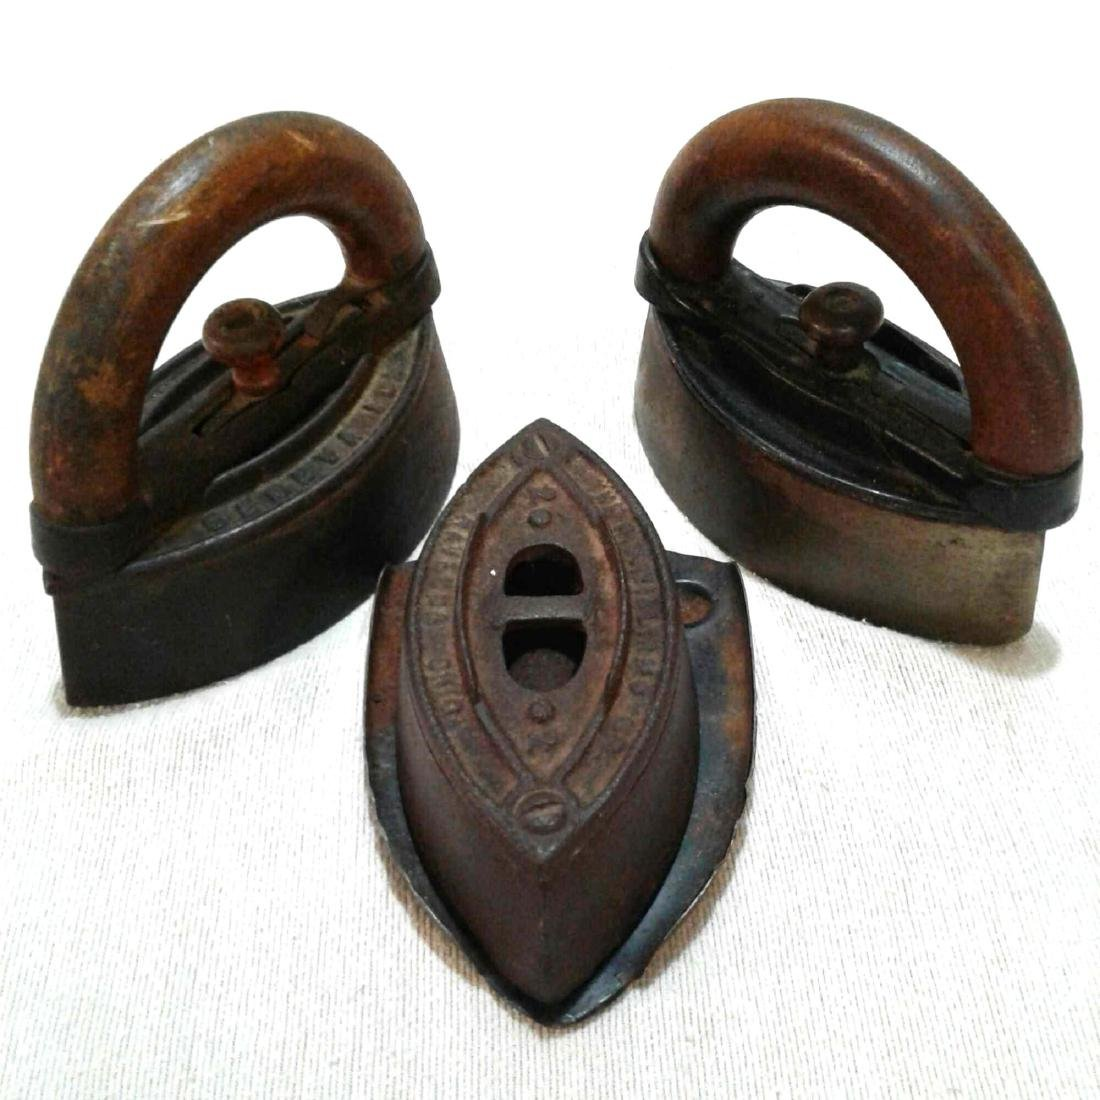 4 Antique Cast Iron Tailor Sad Irons